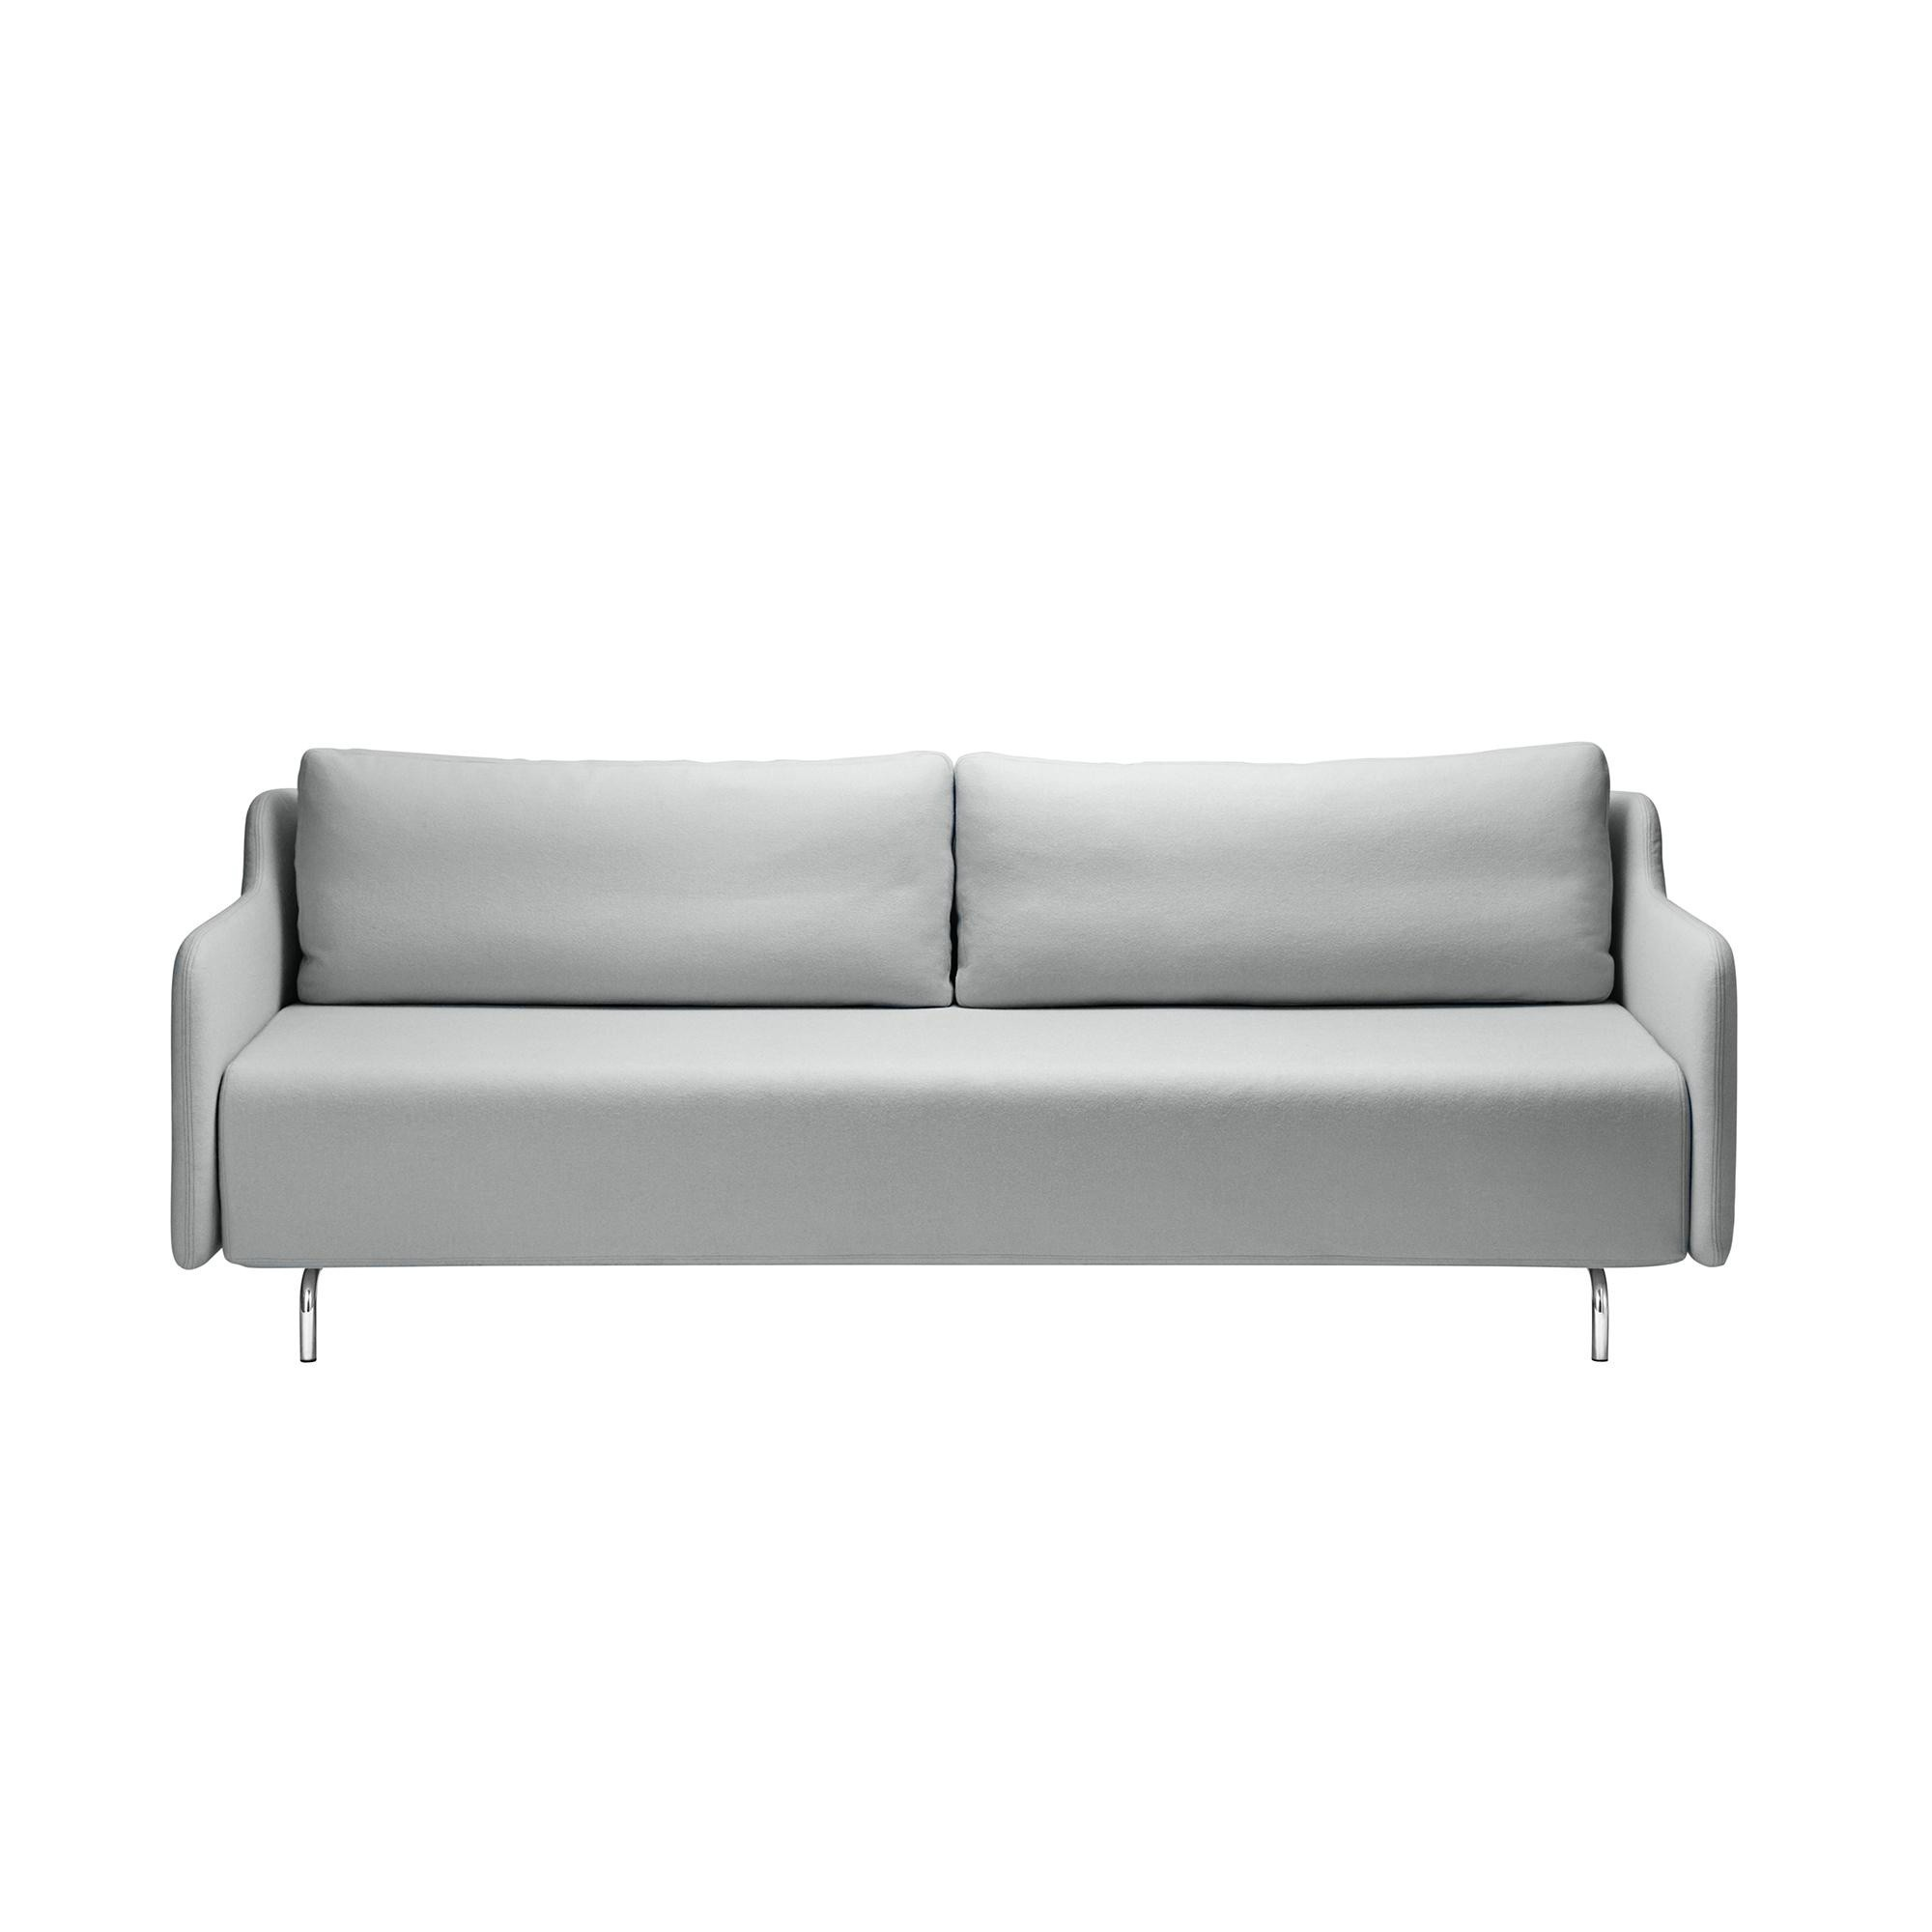 Softline Schlafsofa Venus Sofa Bed